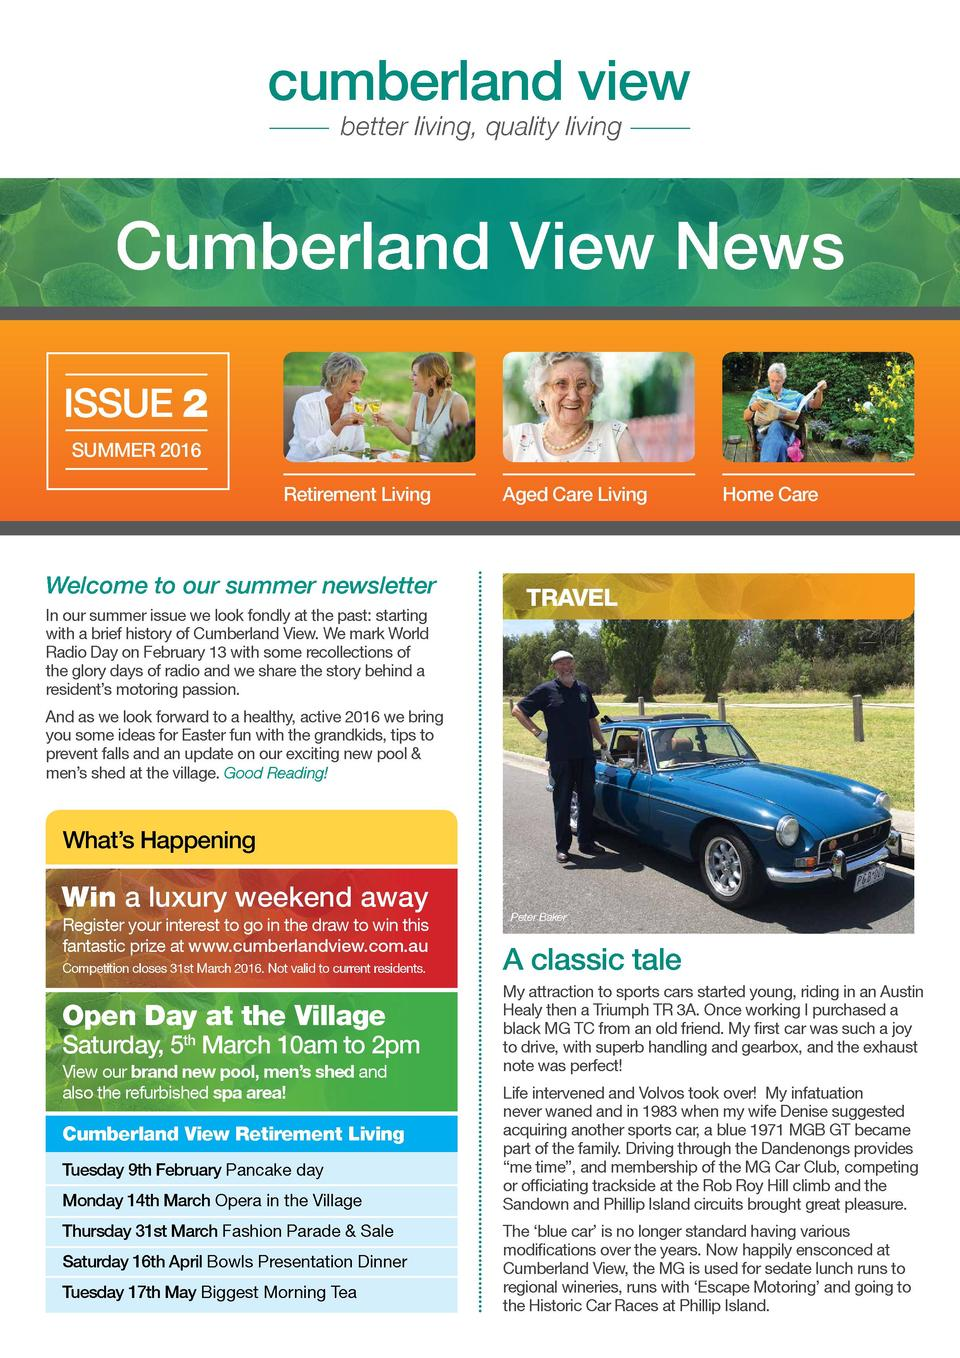 cumberland view better living, quality living  Cumberland View News ISSUE 2 SUMMER 2016 Retirement Living  Welcome to our ...